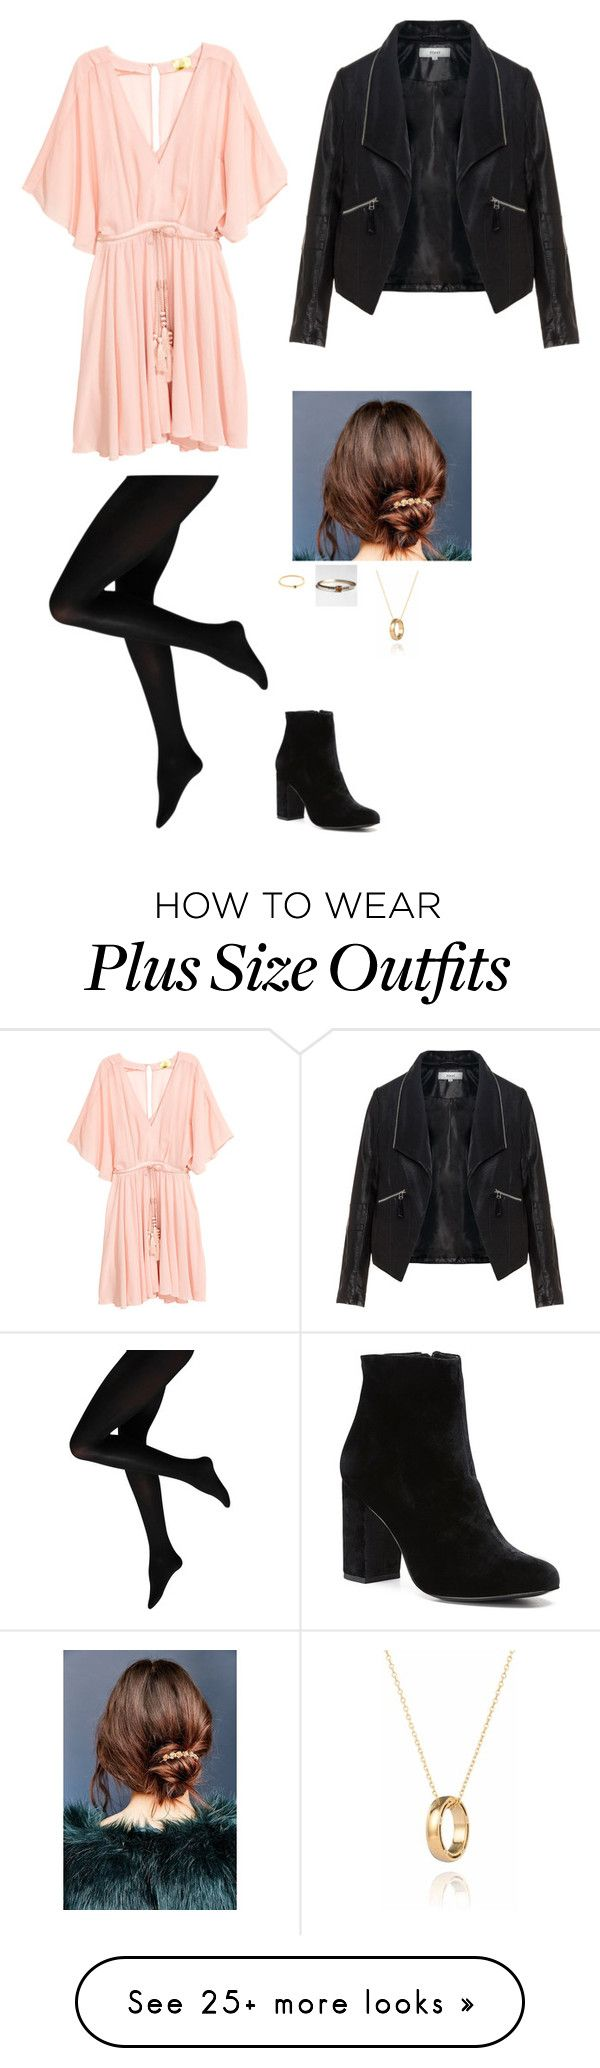 """""""S EH S2E1O3"""" by fashion12guru on Polyvore featuring Urban Outfitters, Witchery, Zizzi and Jennifer Meyer Jewelry"""